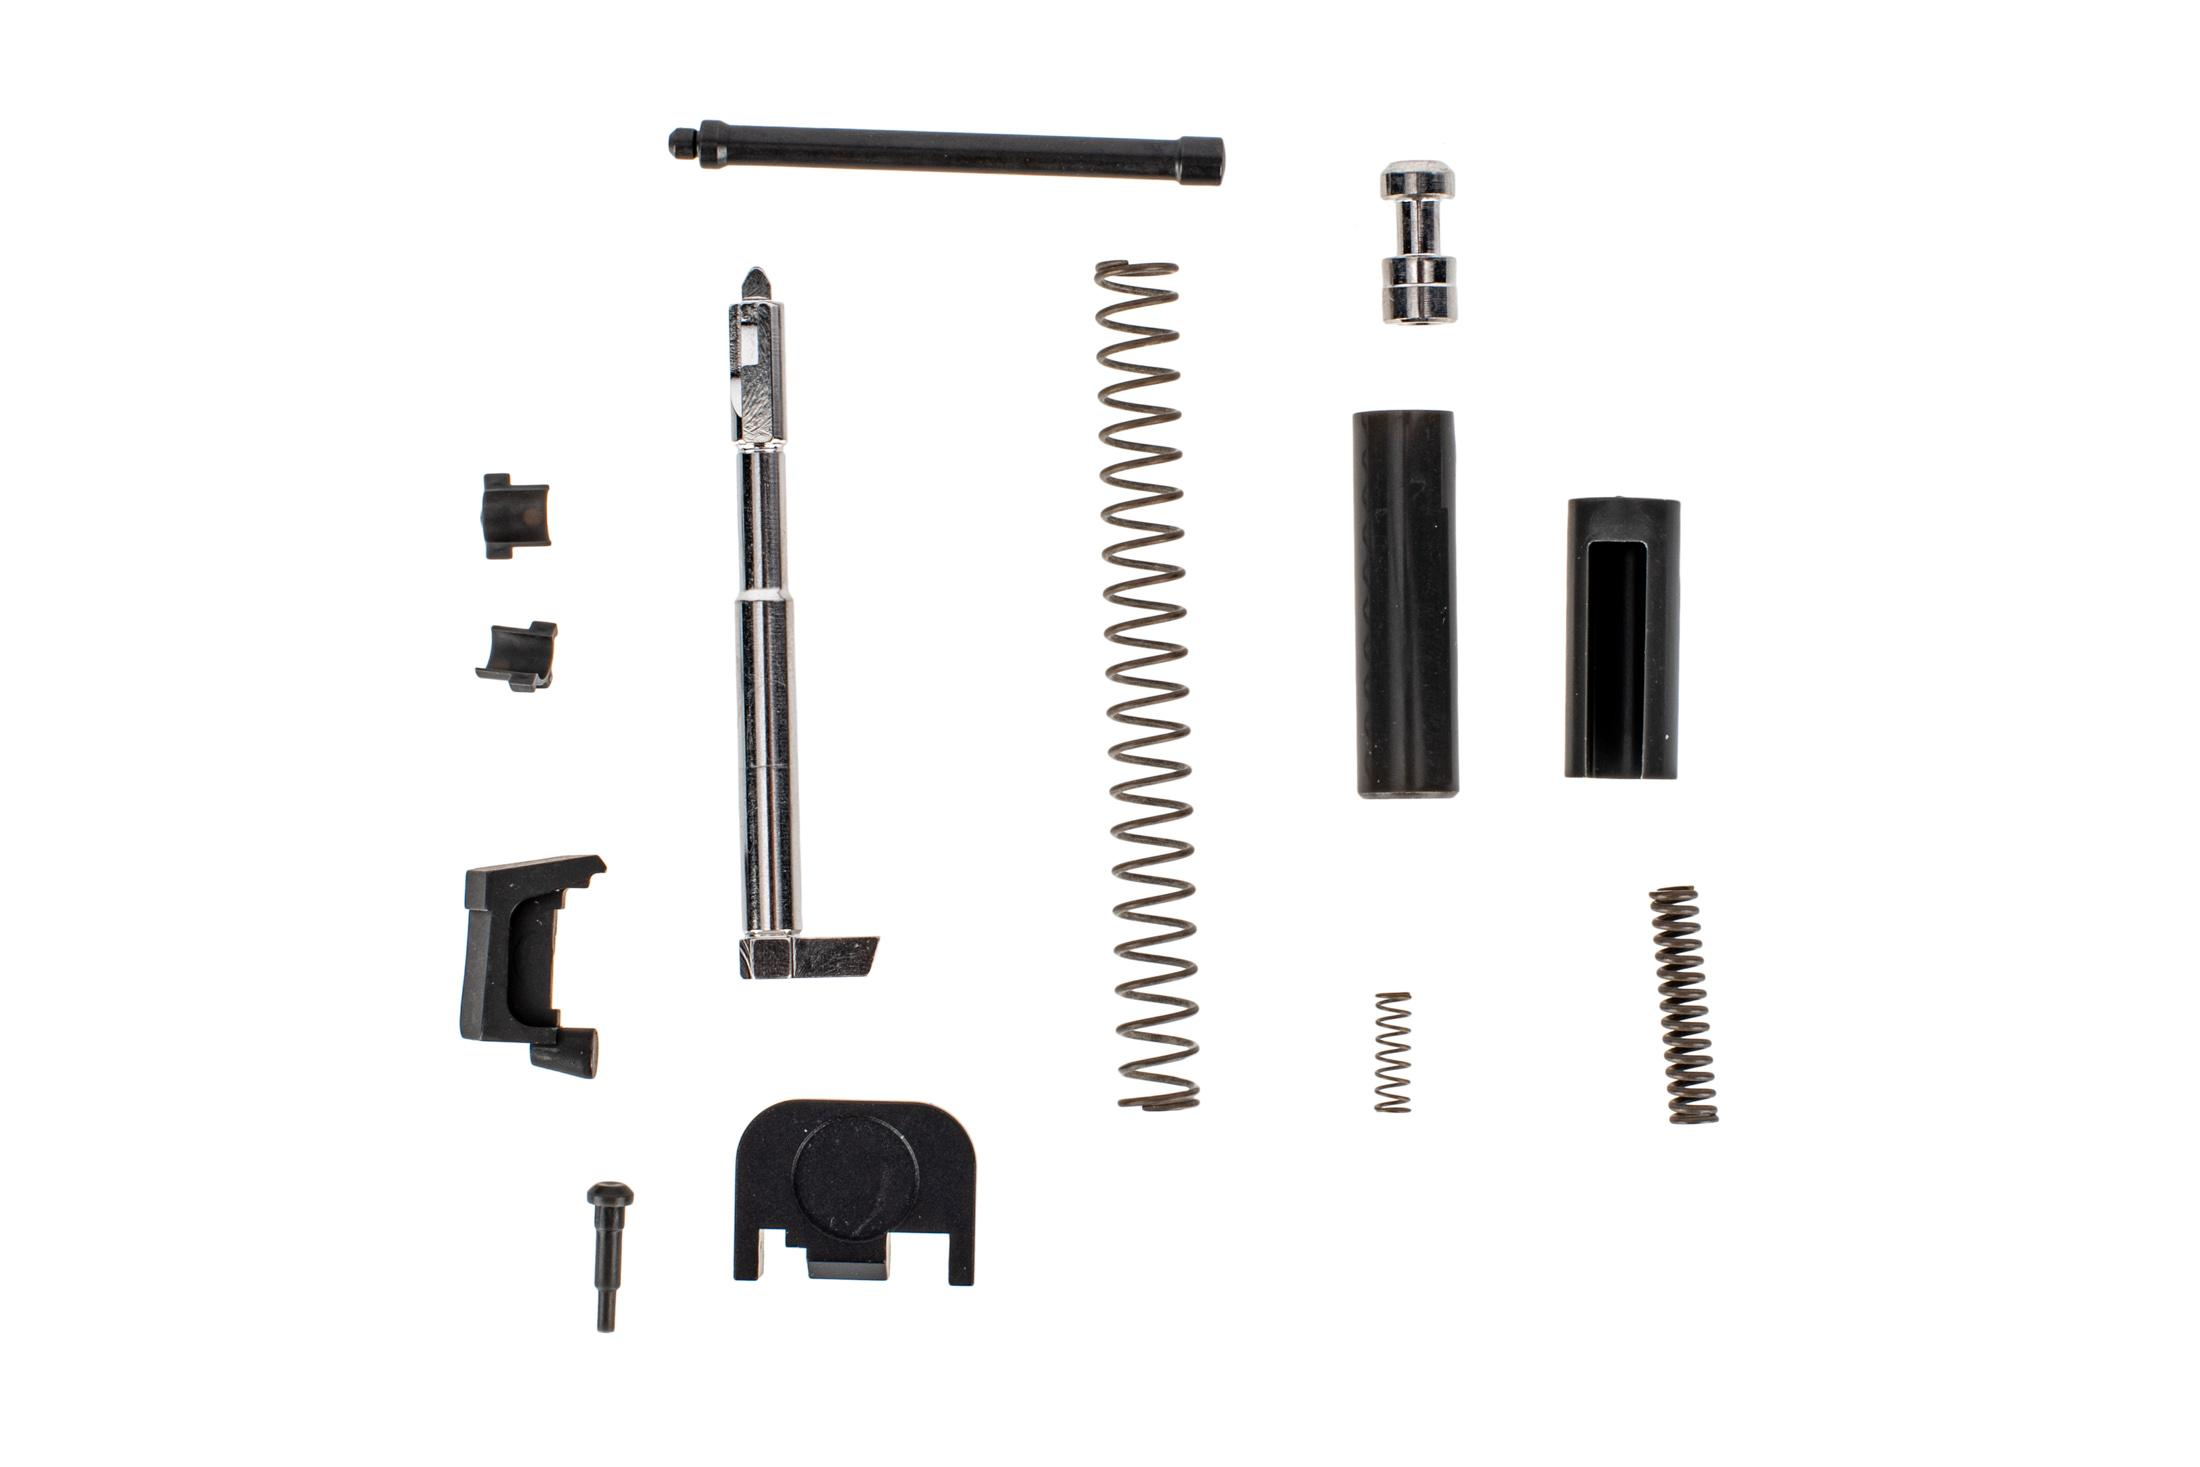 Grey Ghost Precision Glock Slide Completion Kit without guide rod contains high quality components to finish your slide